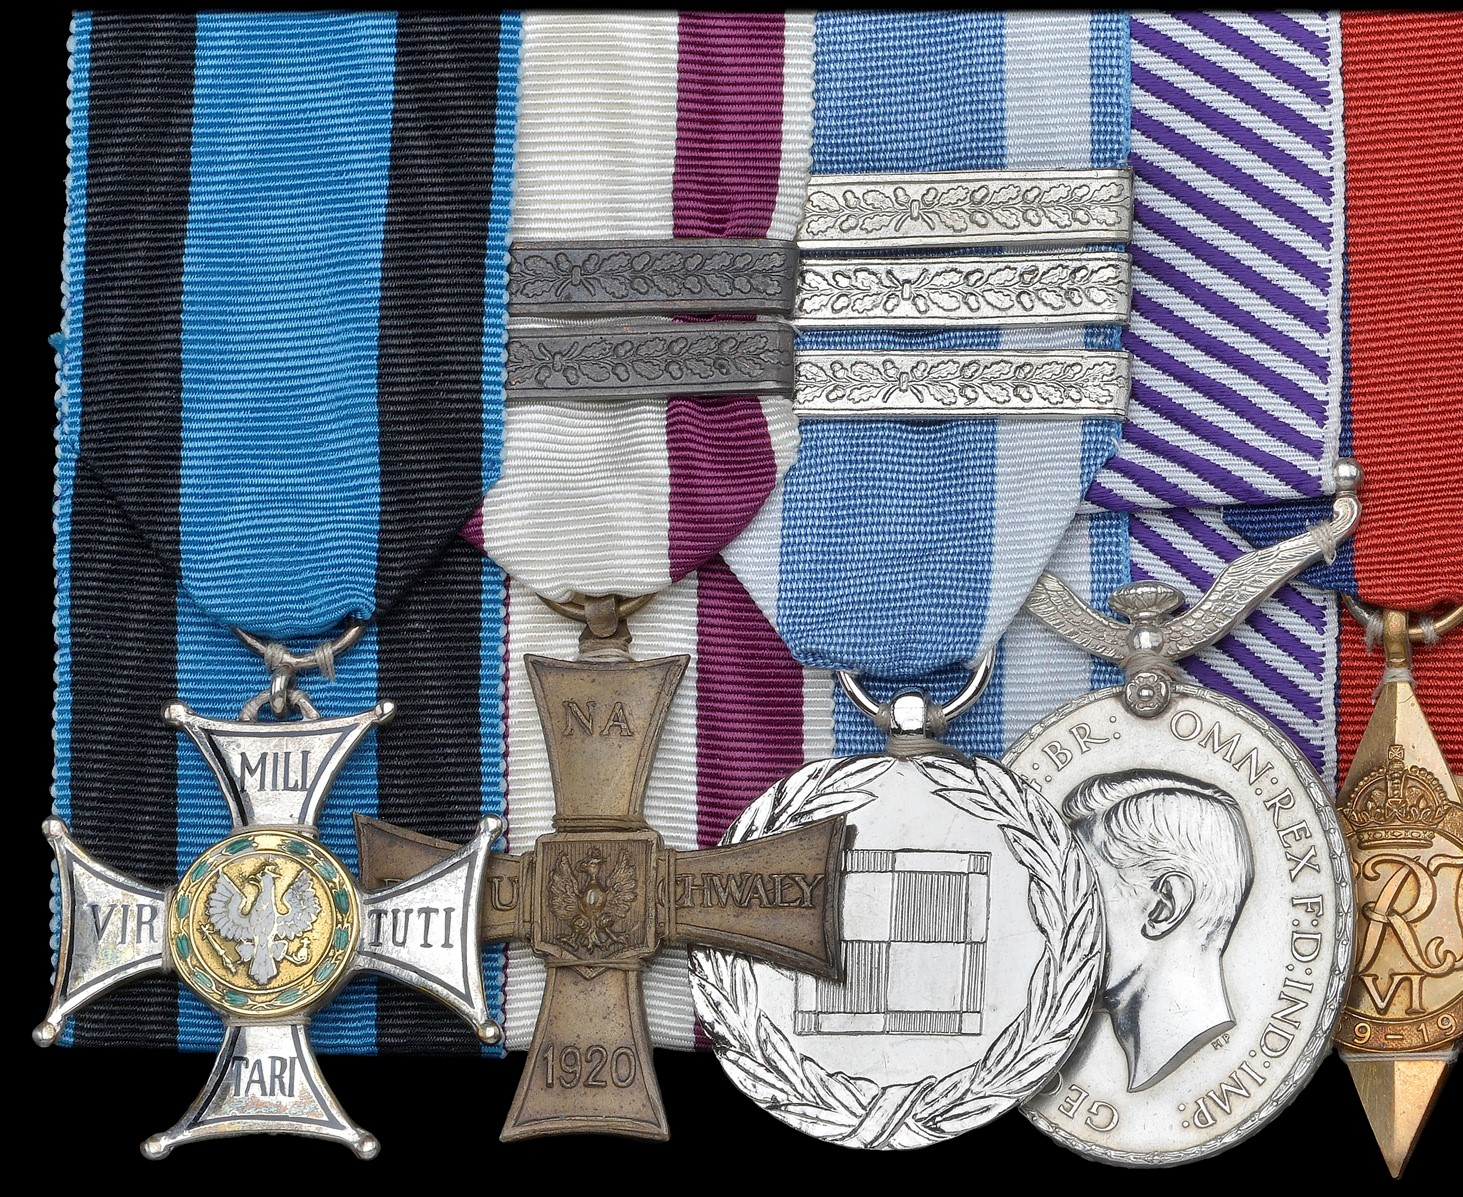 Part of an exceptional gallantry group to a Polish pilot, with the Virtuti Militari and Cross of Valour with three bars and the Polish Air Medal with extra service clasps. Worn with the British DFM